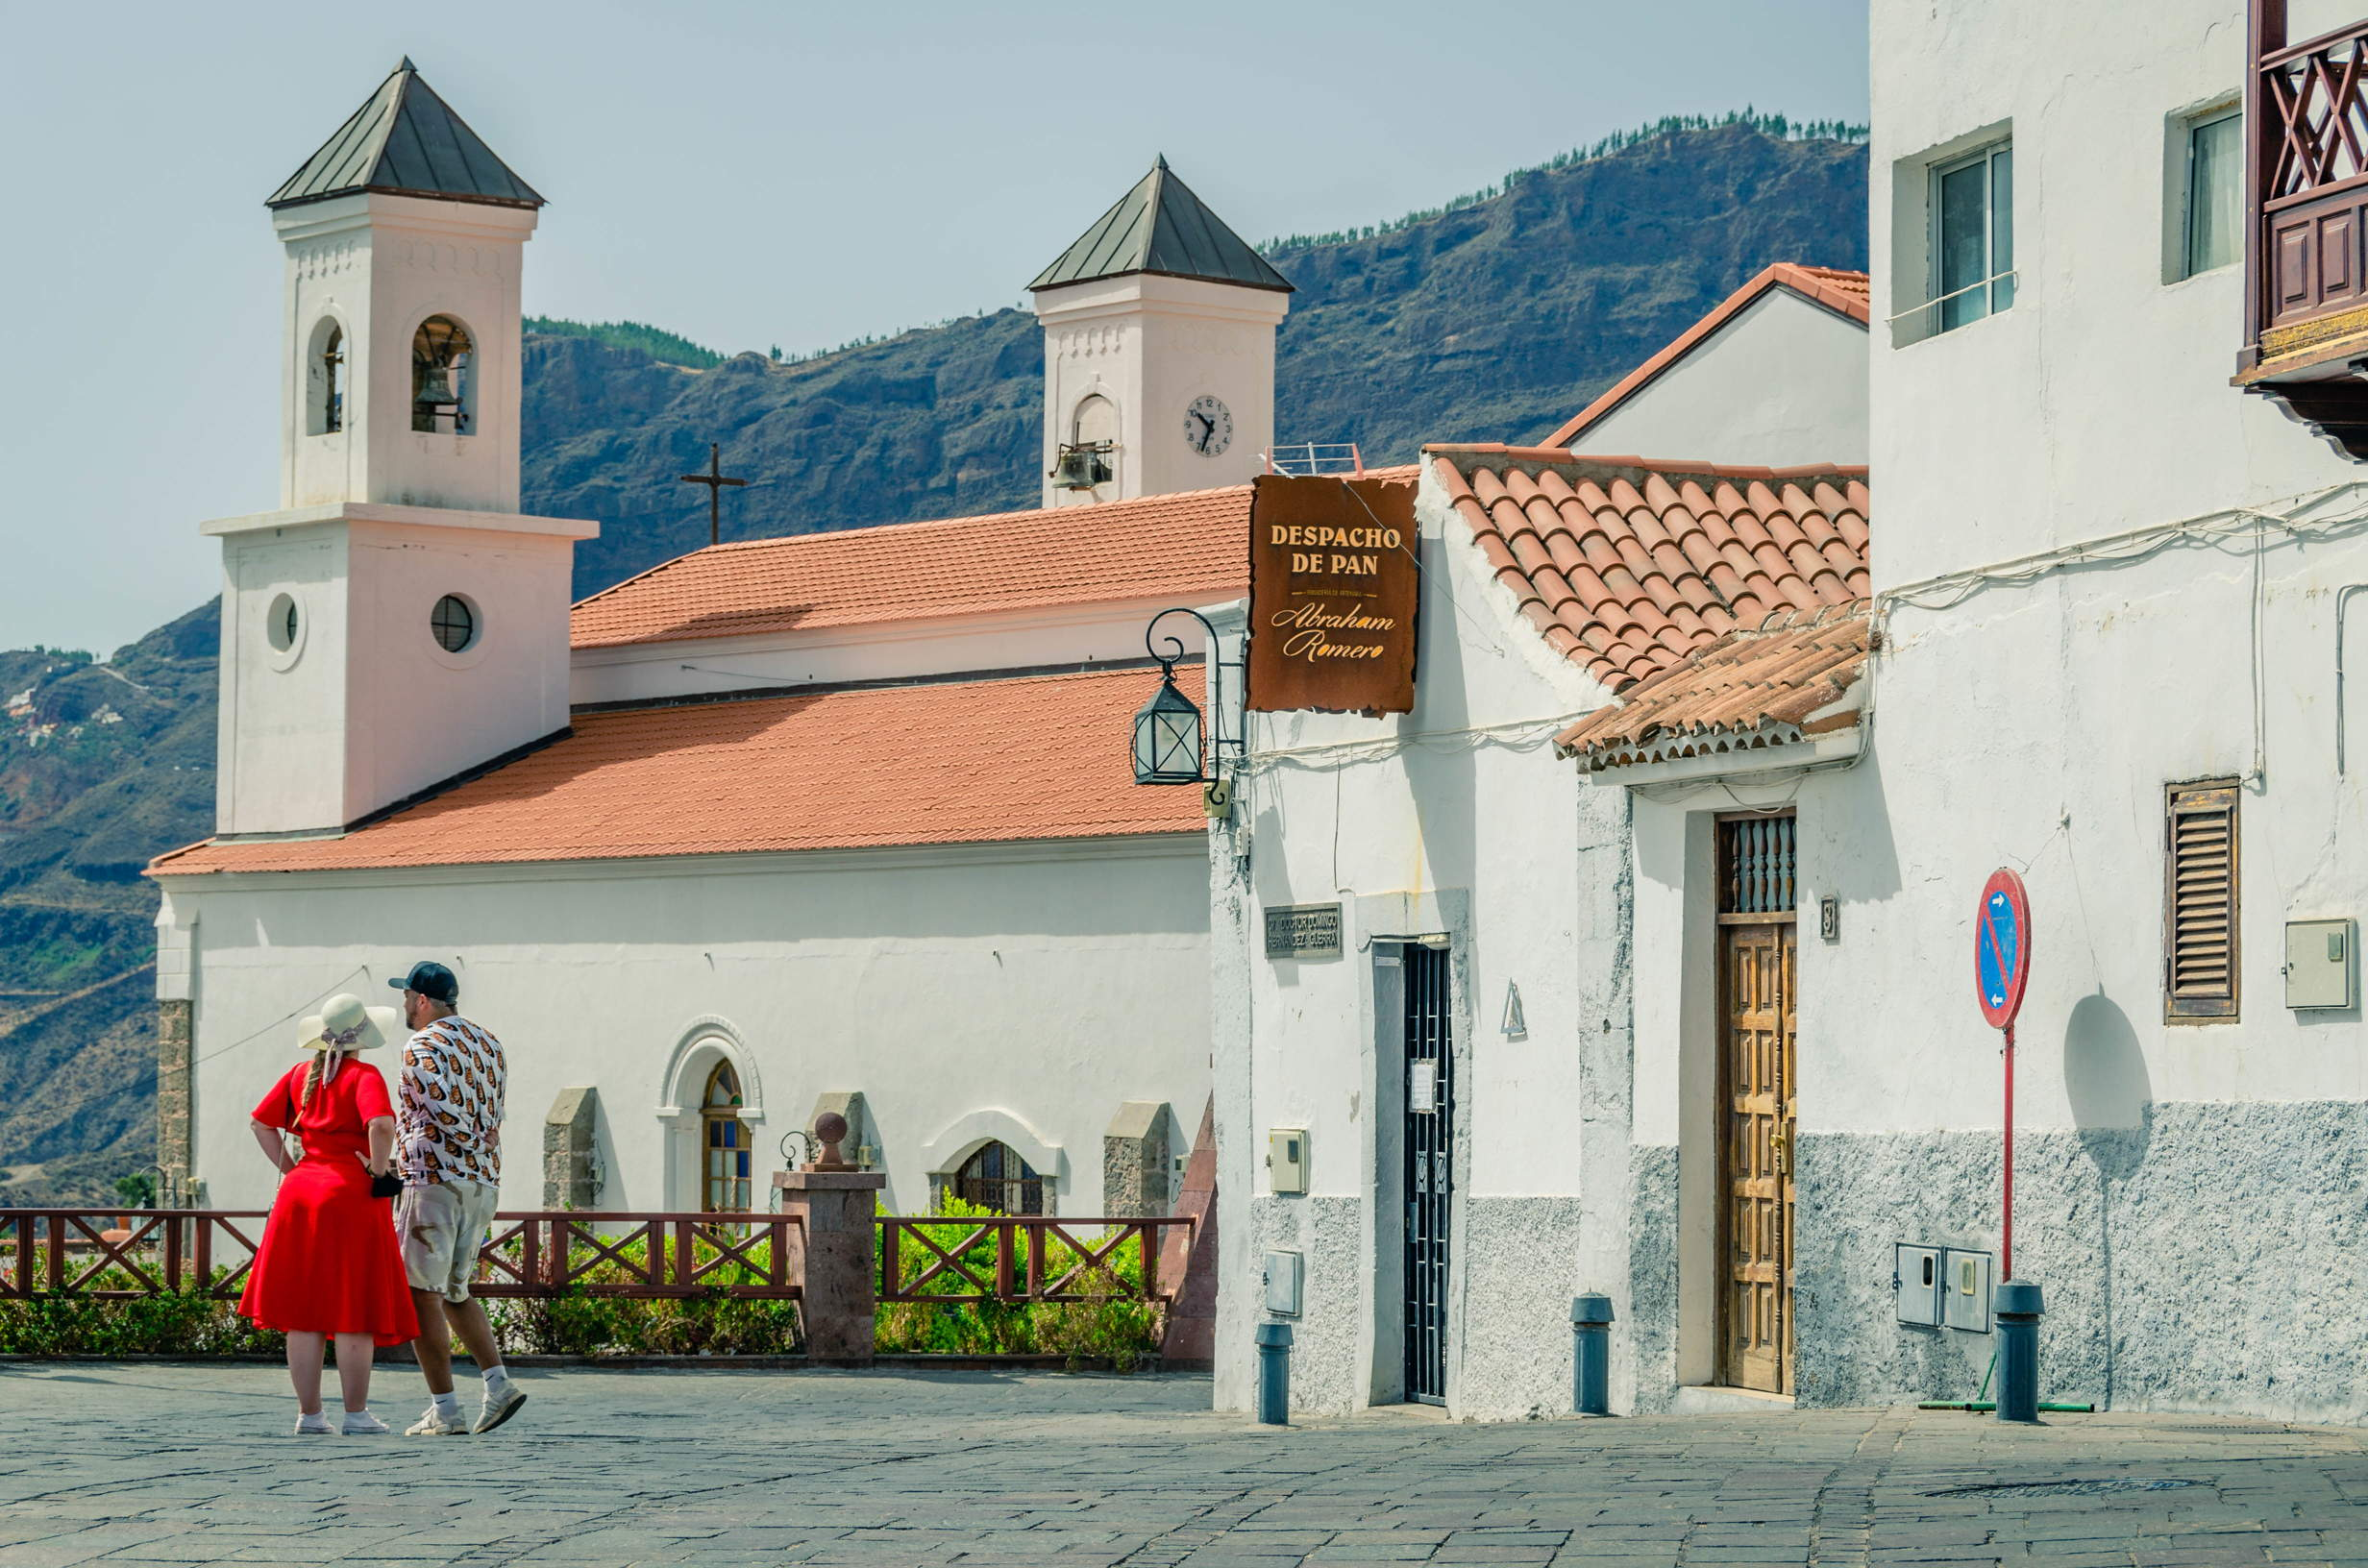 Couple strolling the streets of Tejeda, Gran Canaria